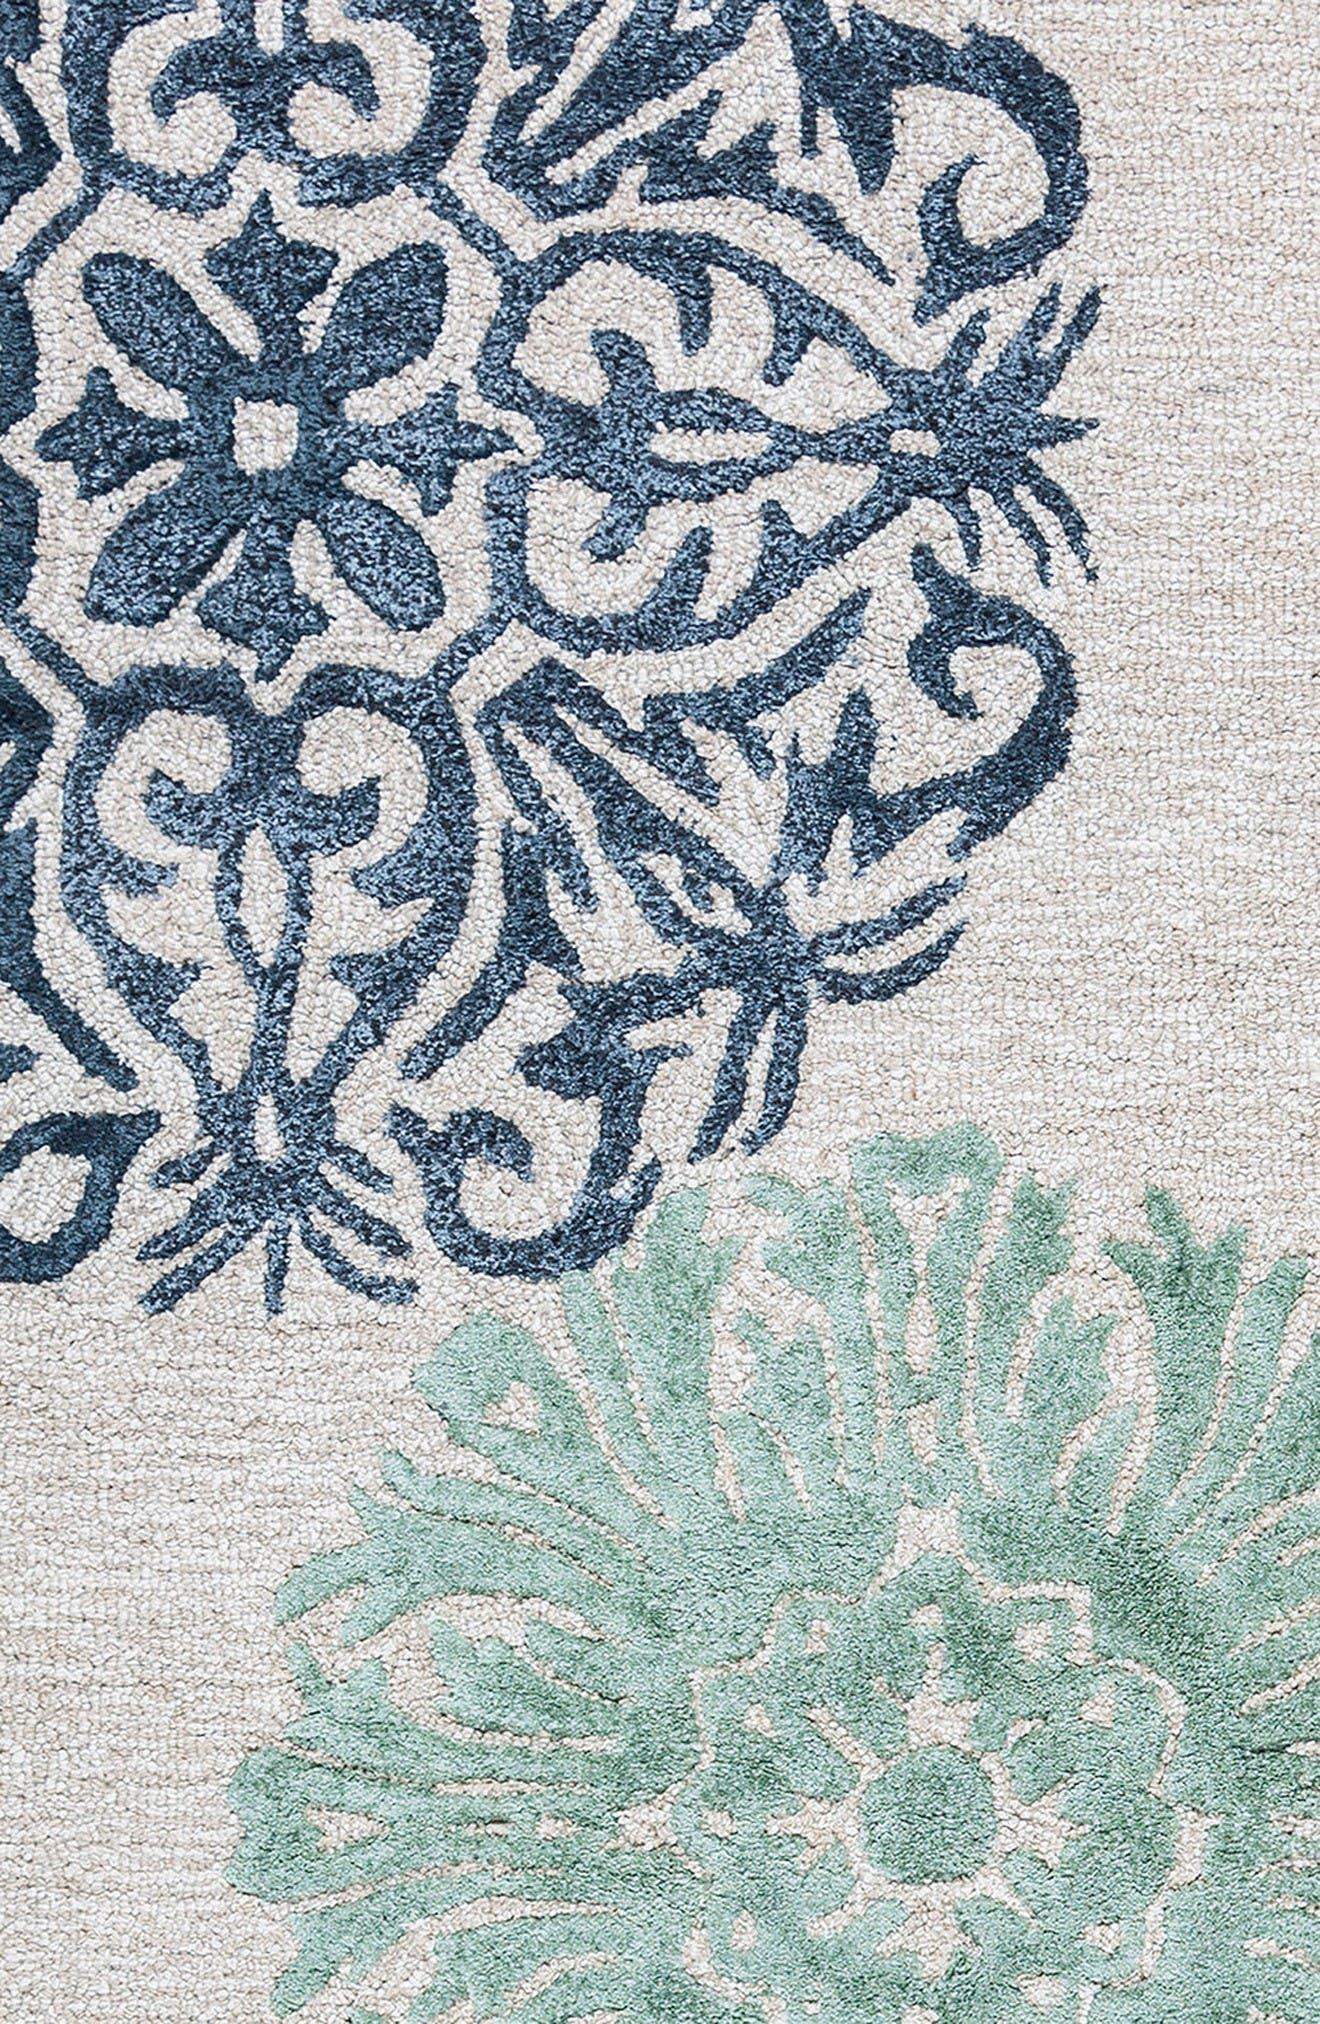 'Eden Harbor' Hand Tufted Wool Area Rug,                             Alternate thumbnail 6, color,                             Navy/ Aqua/ Grey